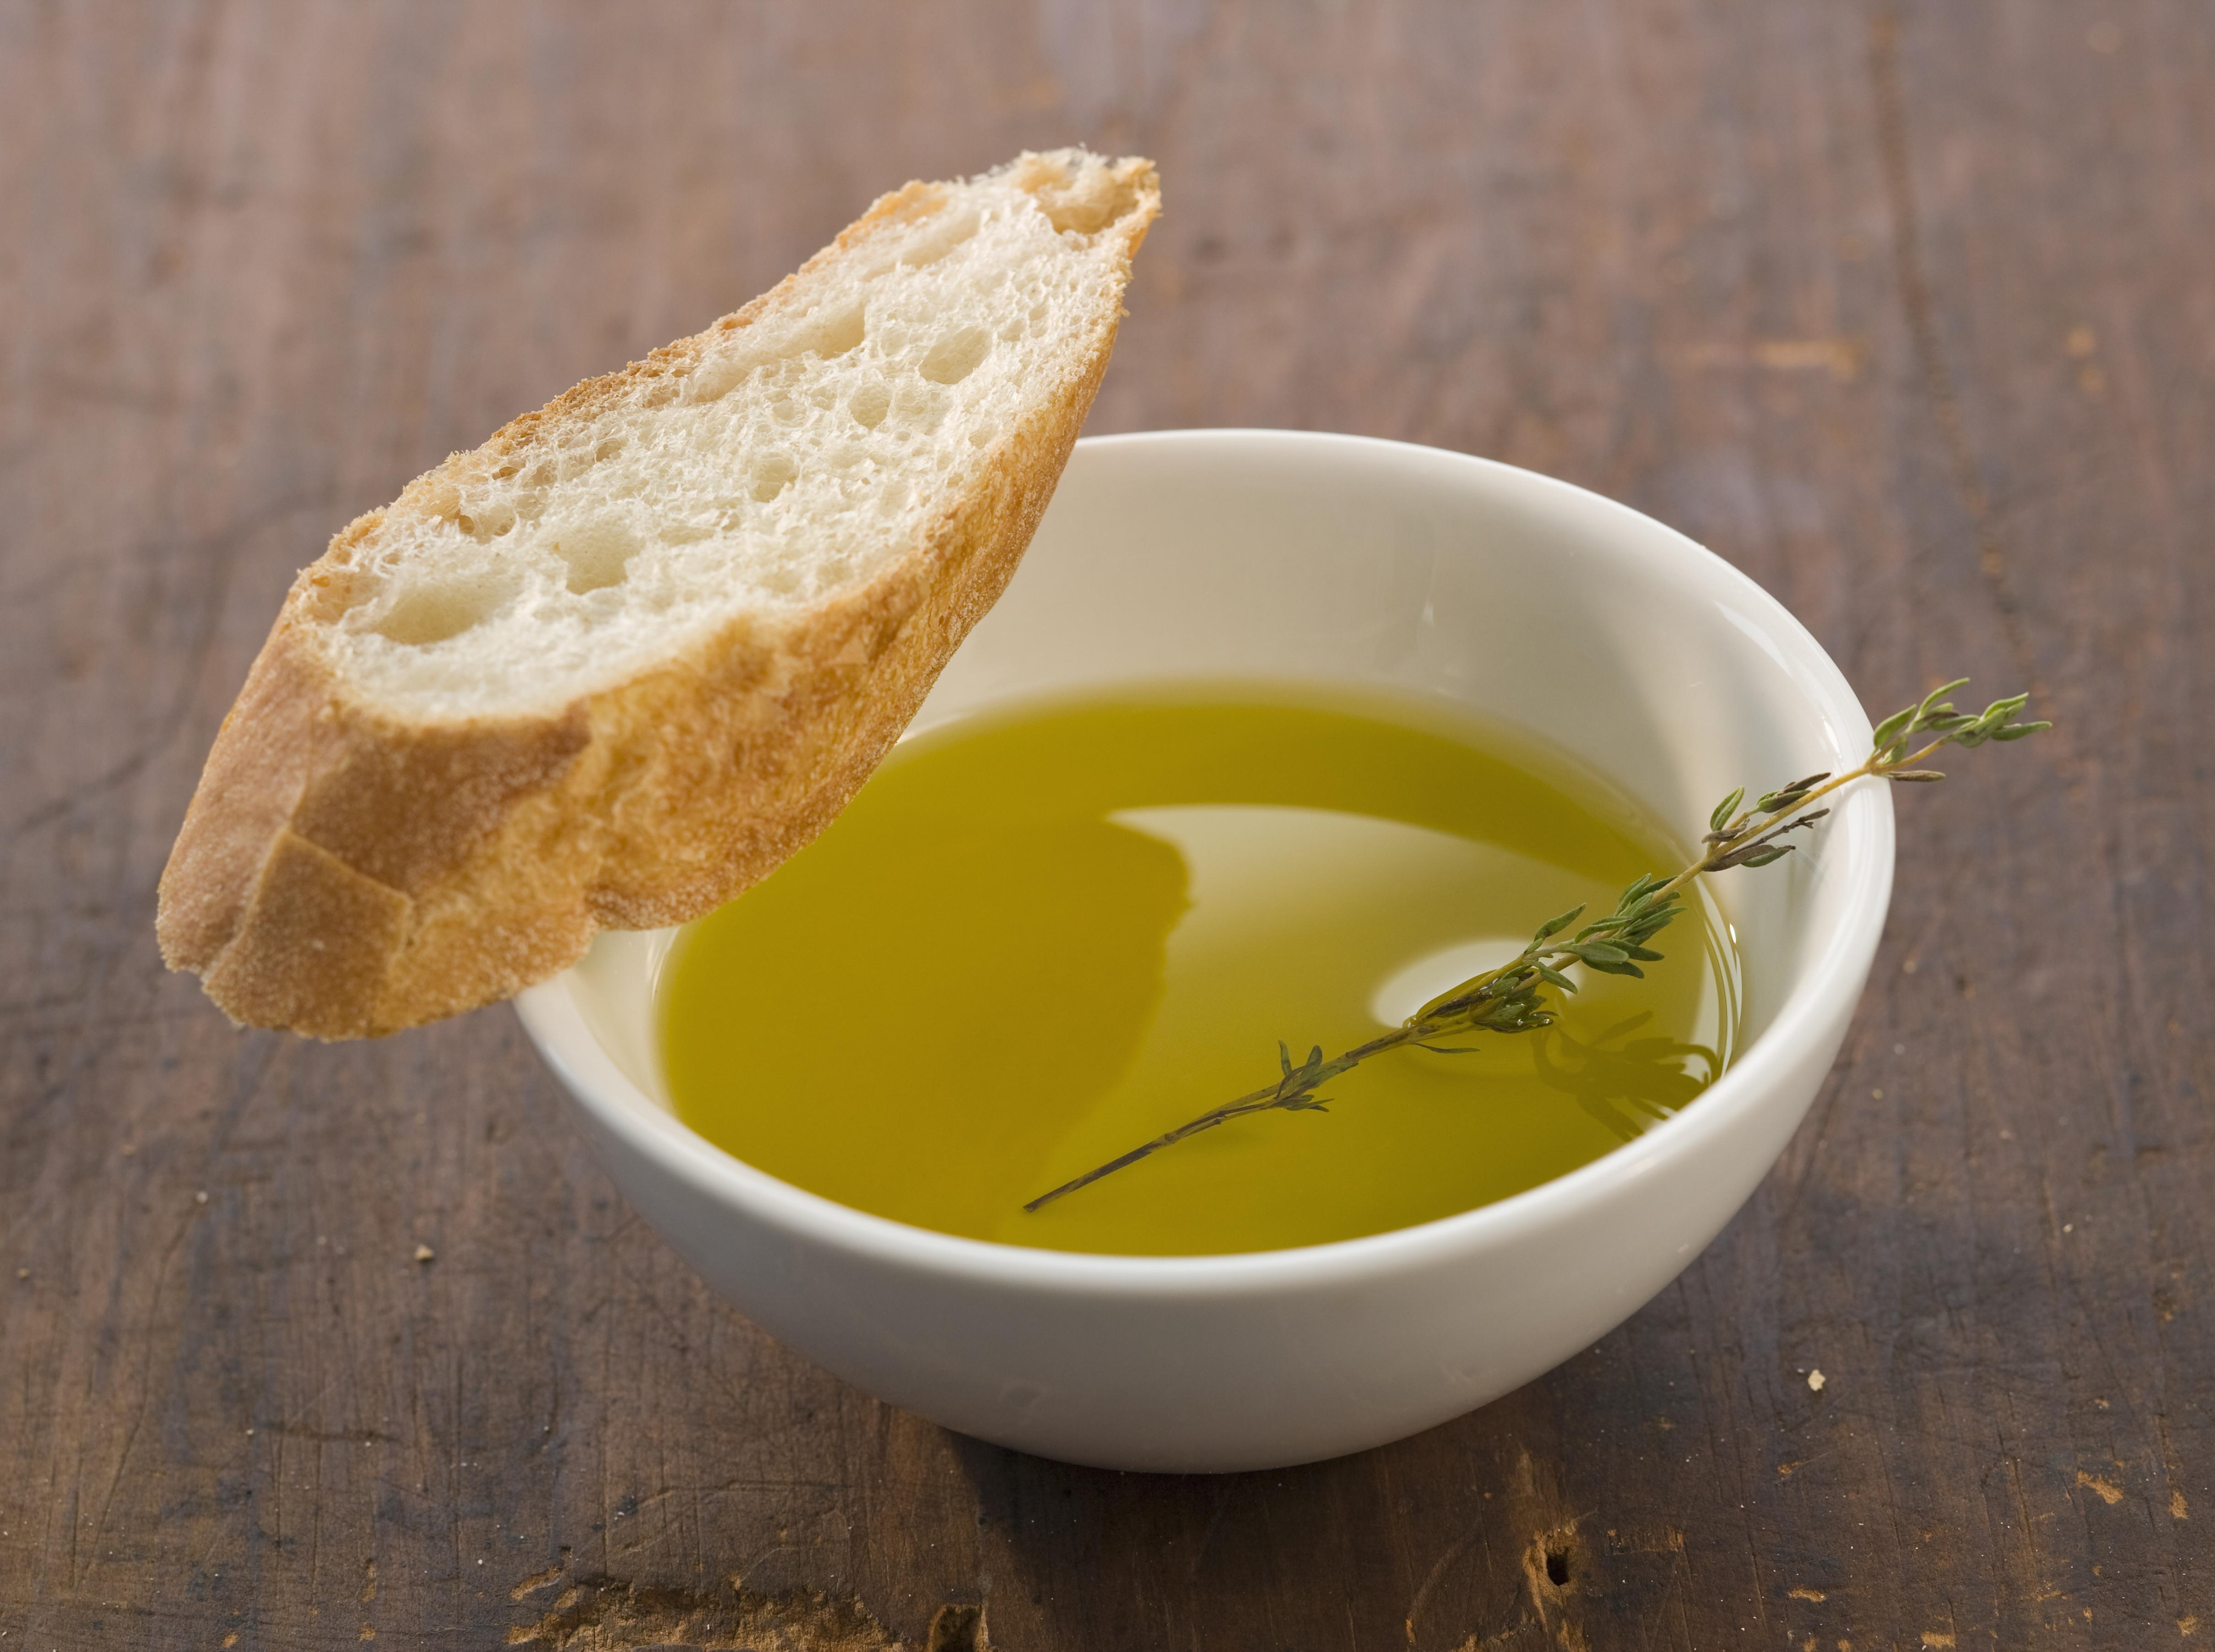 Slice of bread and olive oil, close-up